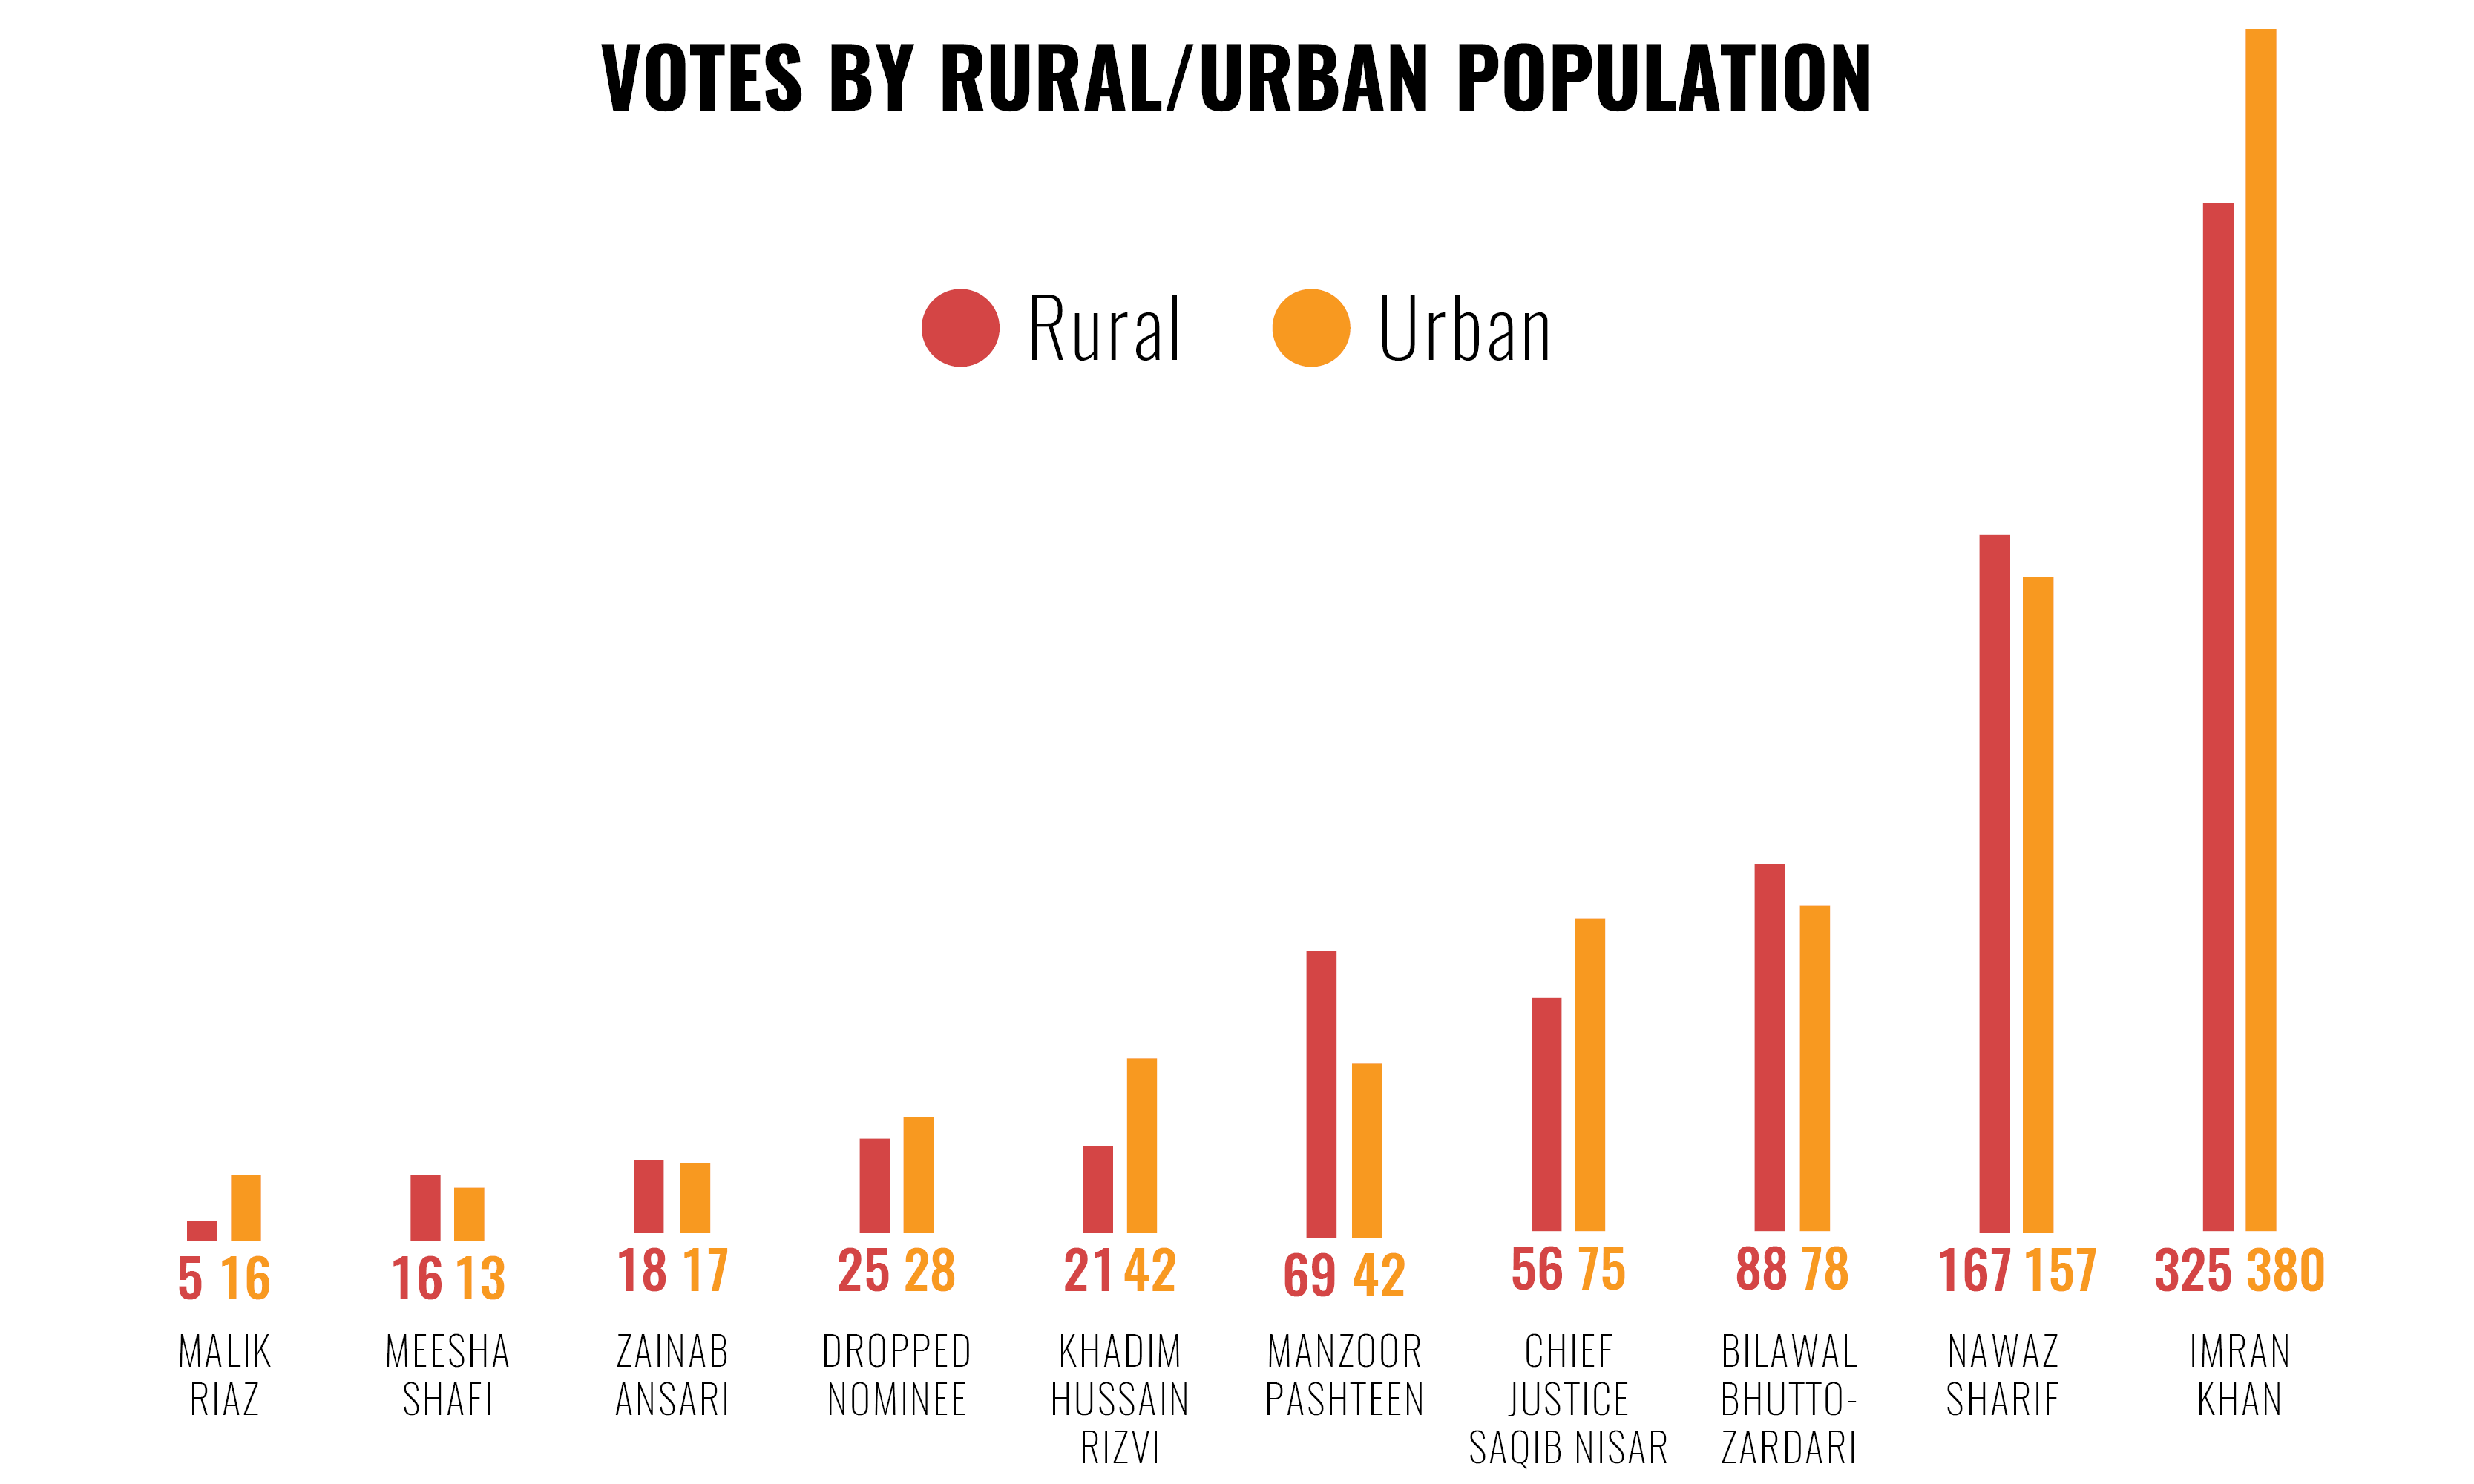 Rural and urban votes for the ground survey